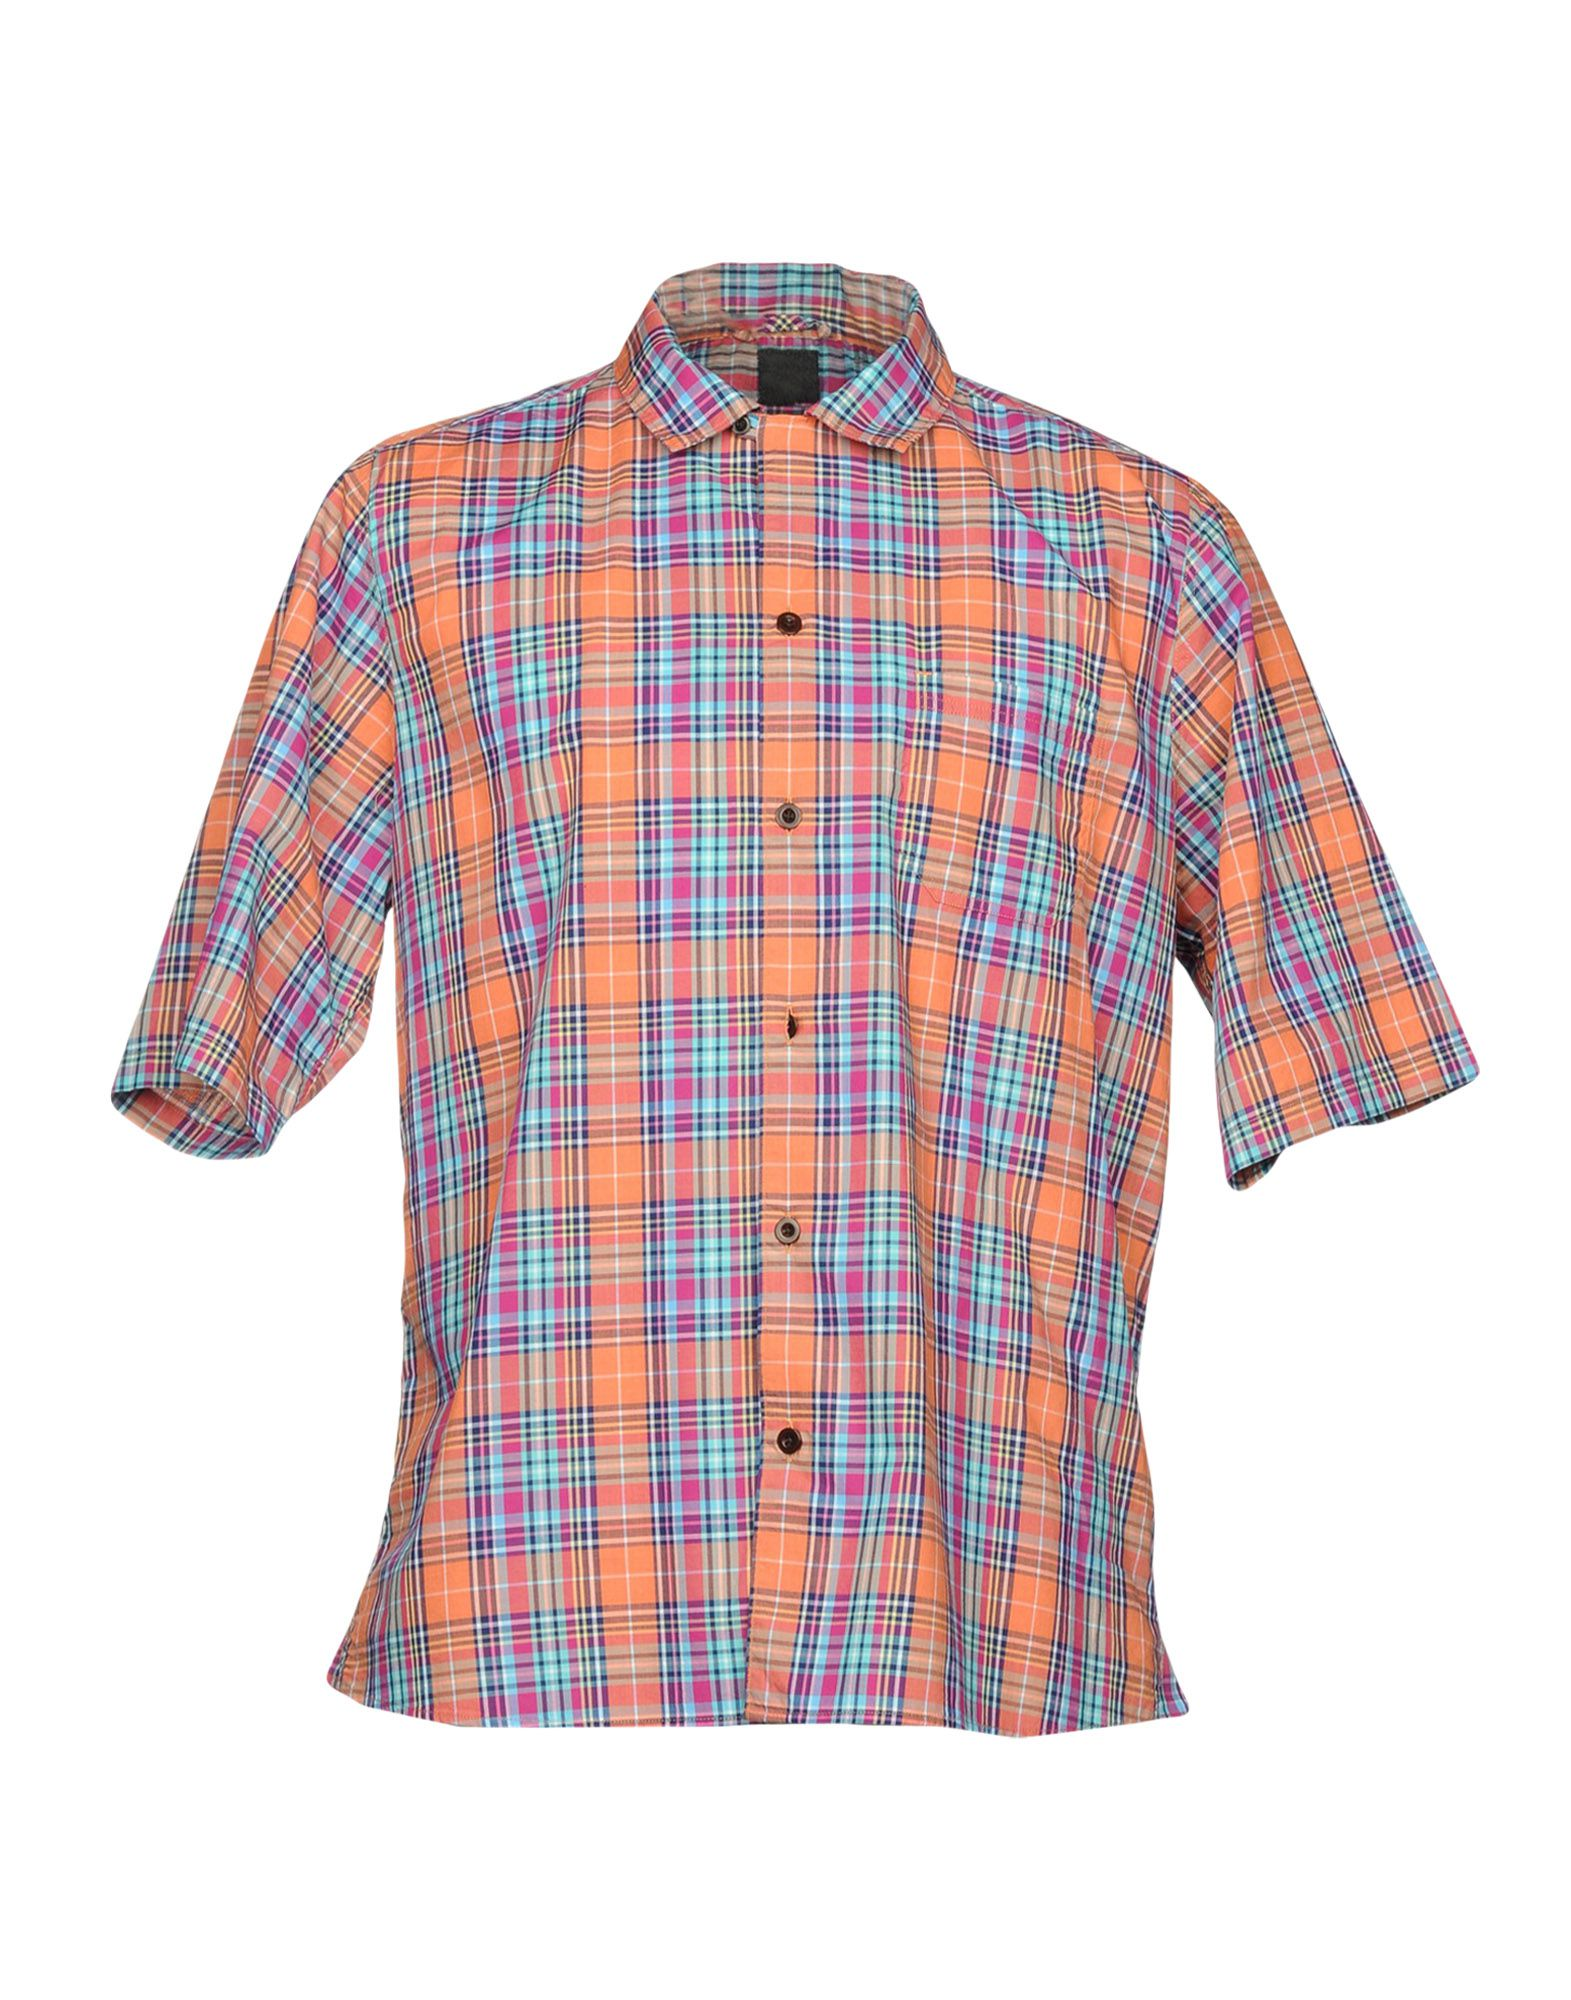 ALBAM Checked Shirt in Orange